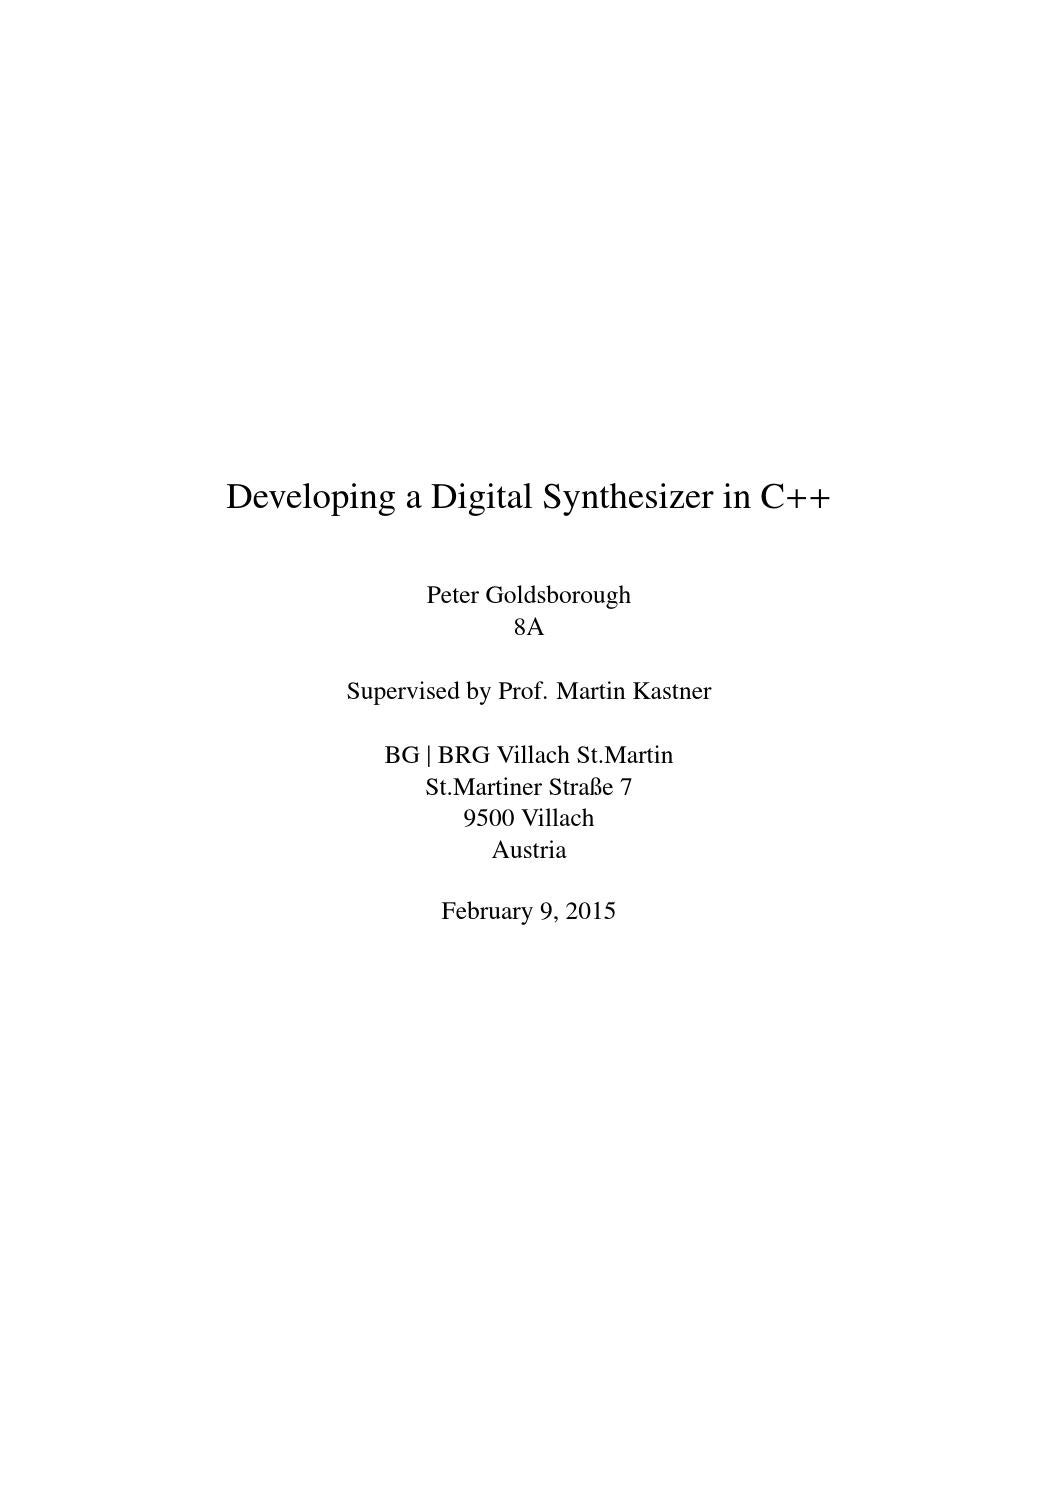 Developing a Digital Synthesizer in C++ by Peter